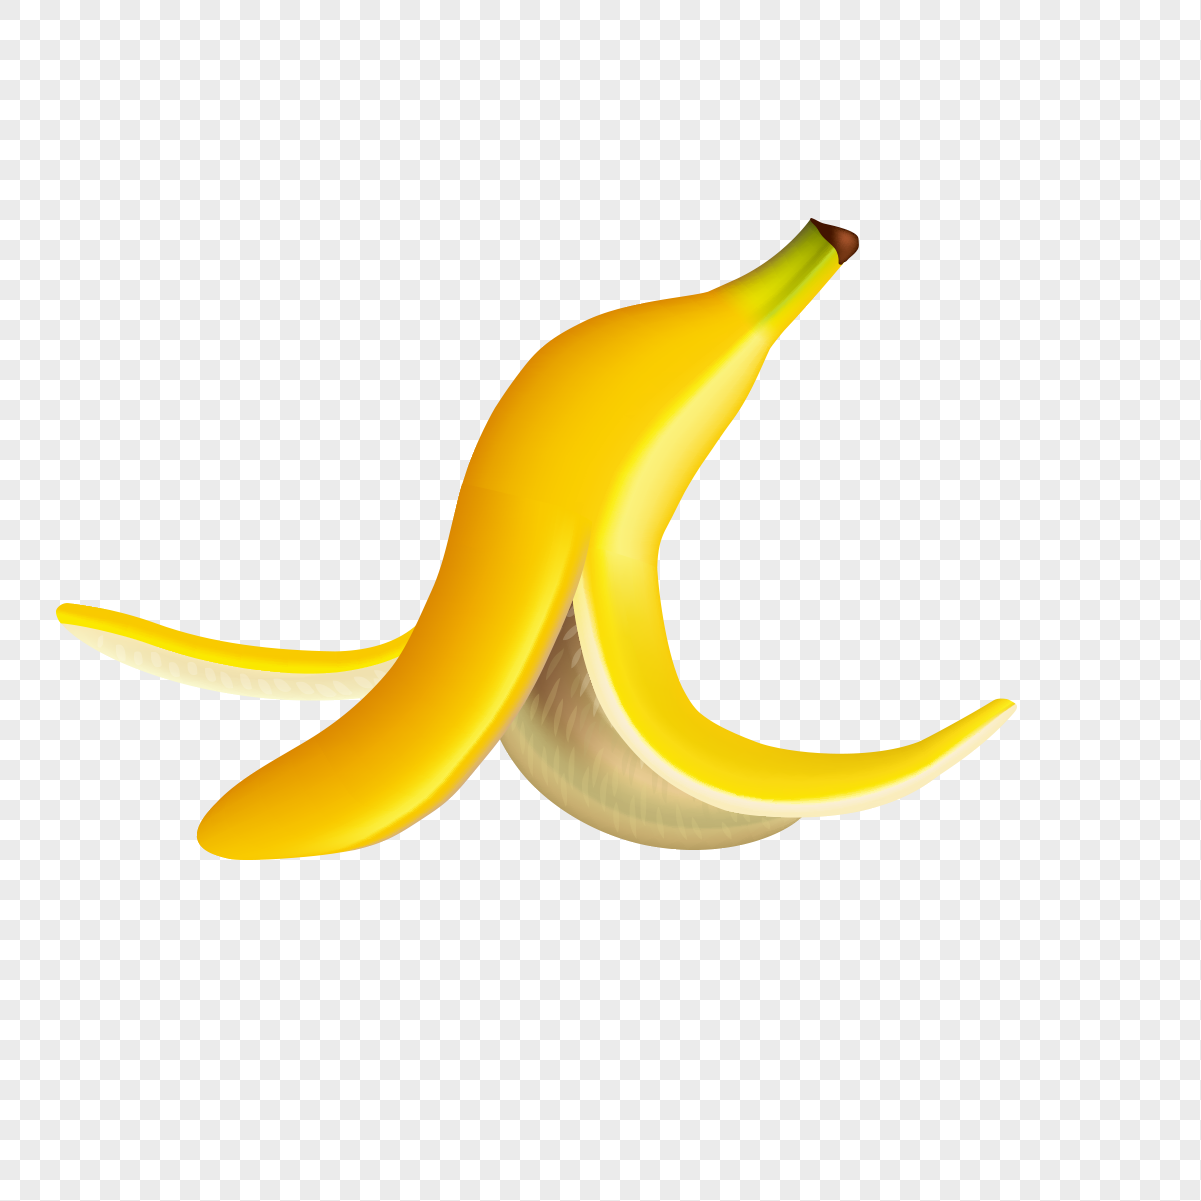 Banana Slice Pattern Png Image Picture Free Download